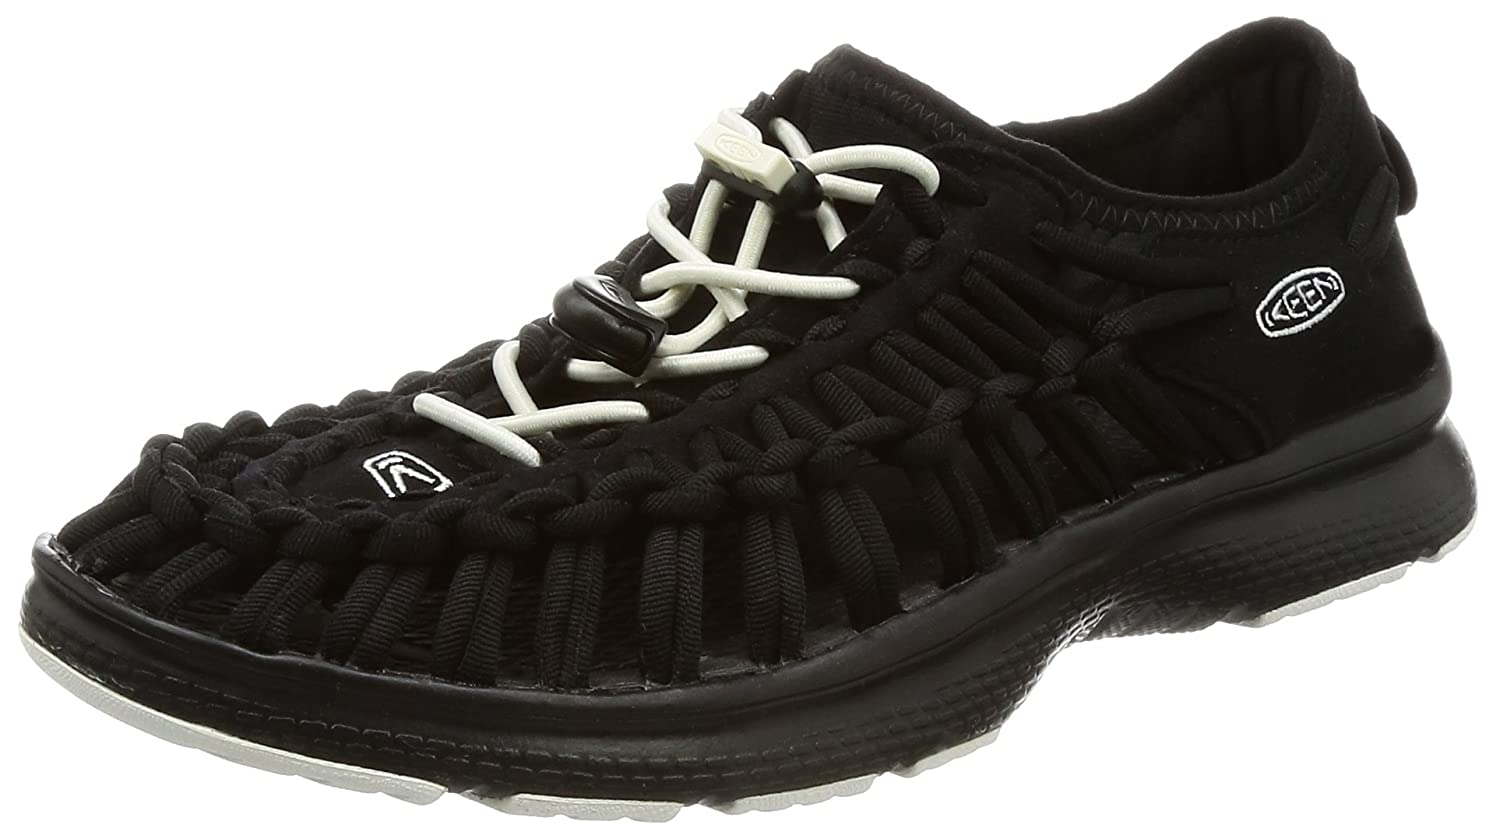 KEEN Women's Uneek o2-w Sandal B01MSNI3NO 10 B(M) US|Black/White